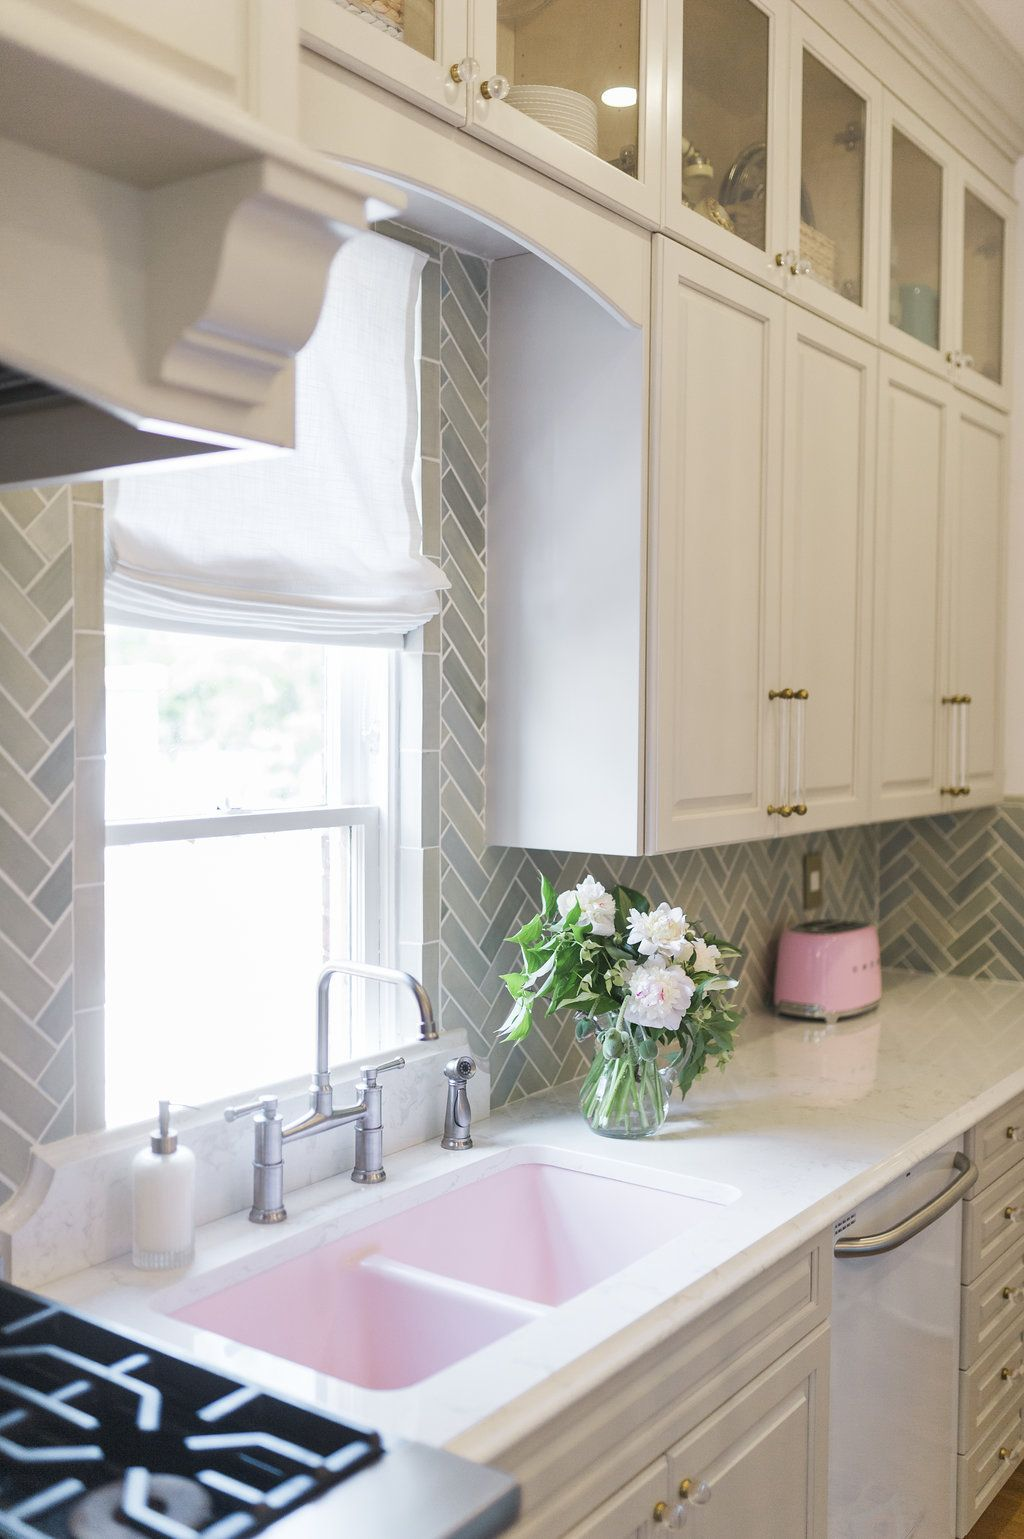 Window kitchen cabinets  how to run kitchen cabinets across a low window  client showcase